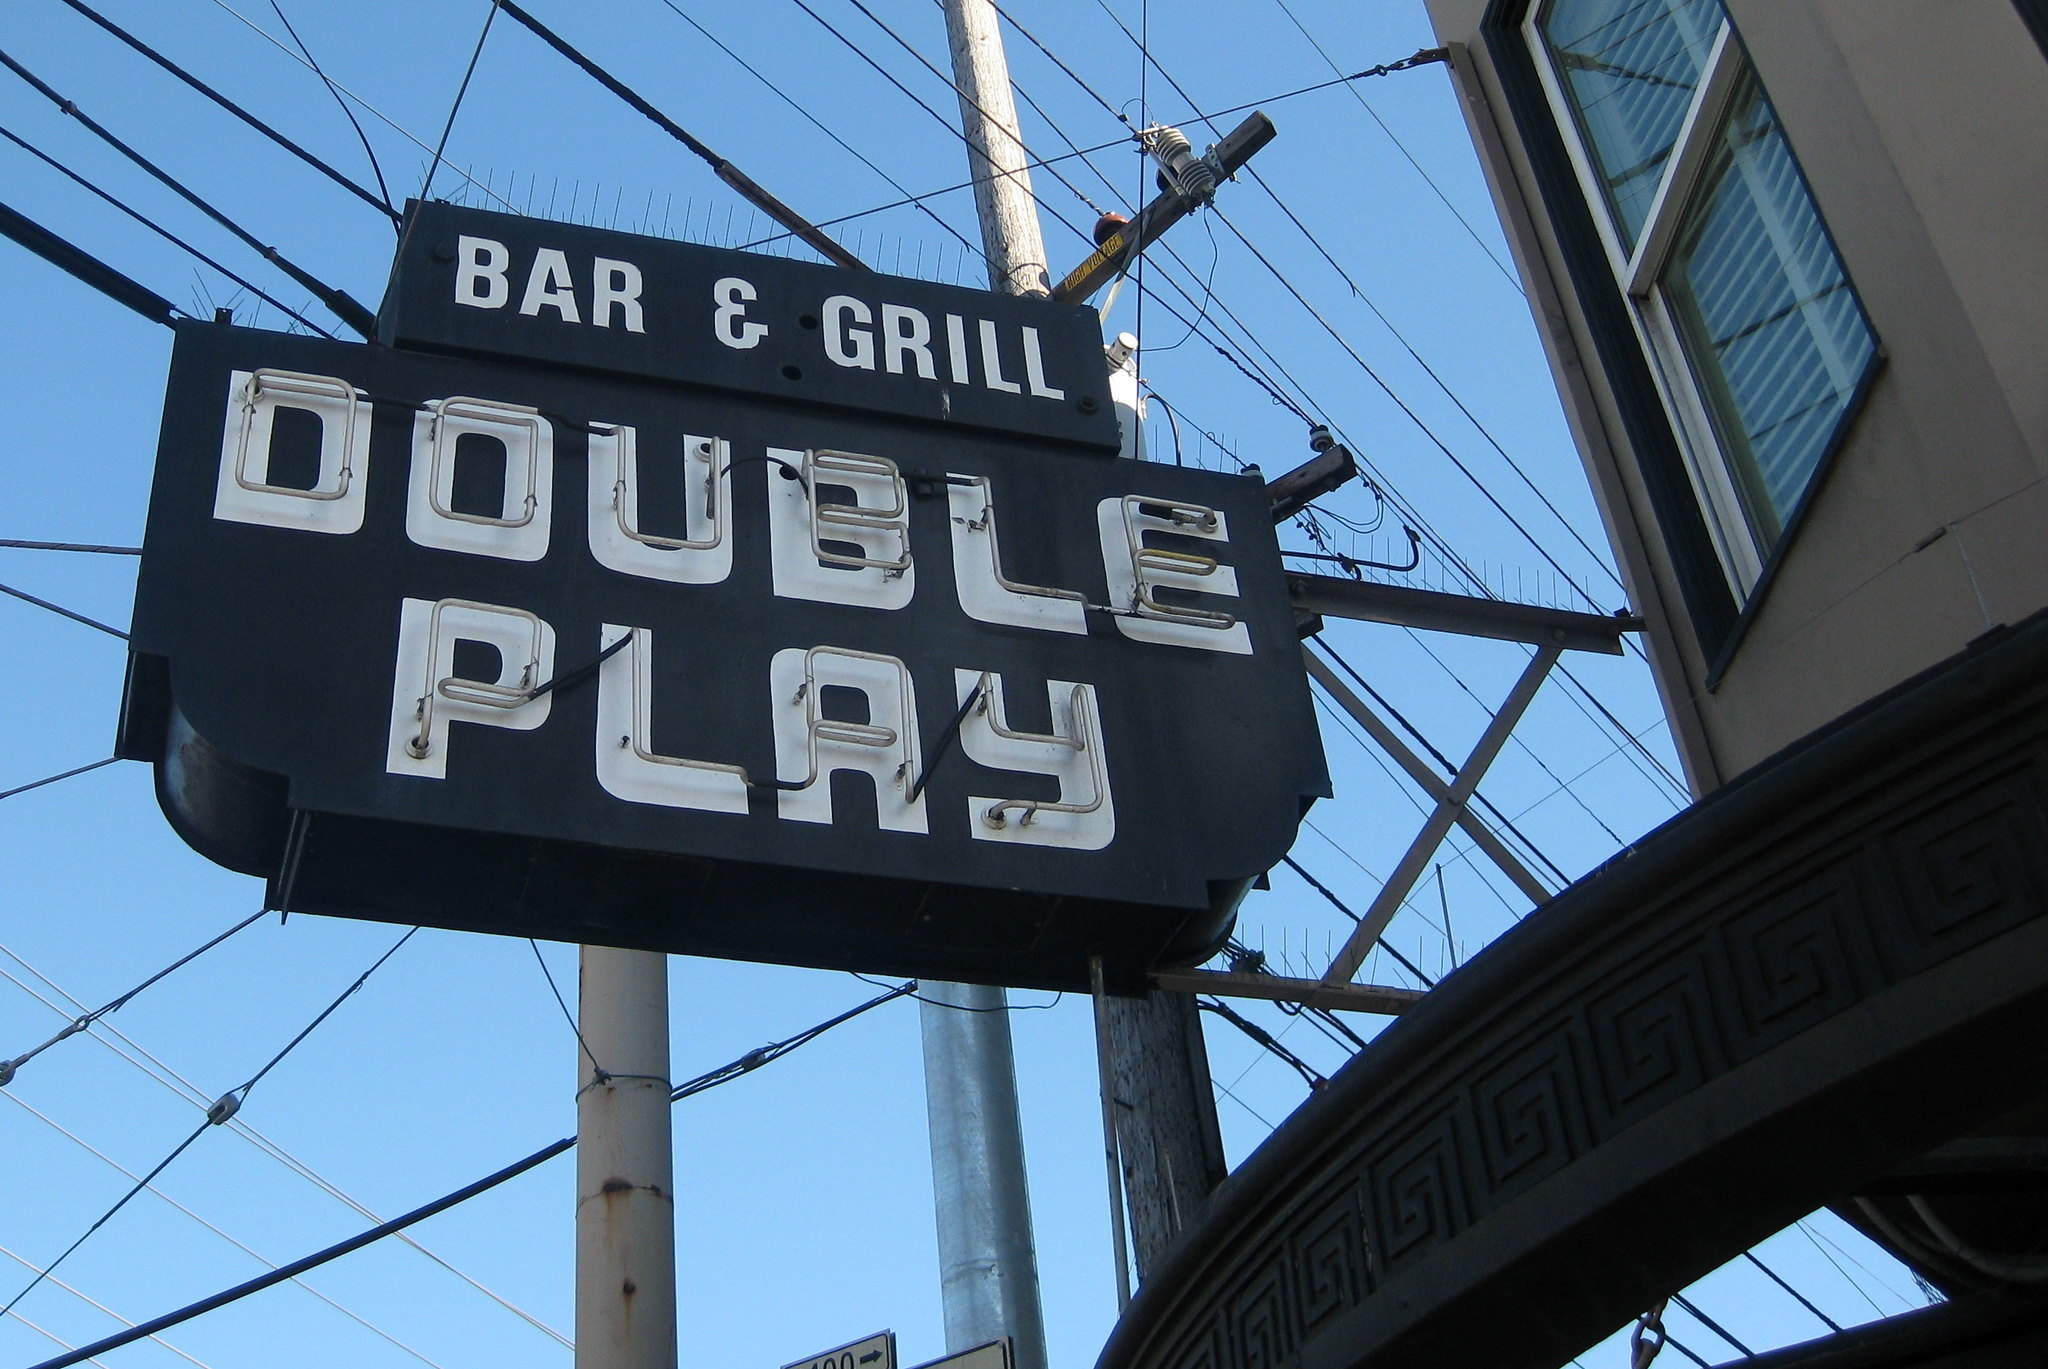 The Double Play Bar & Grill